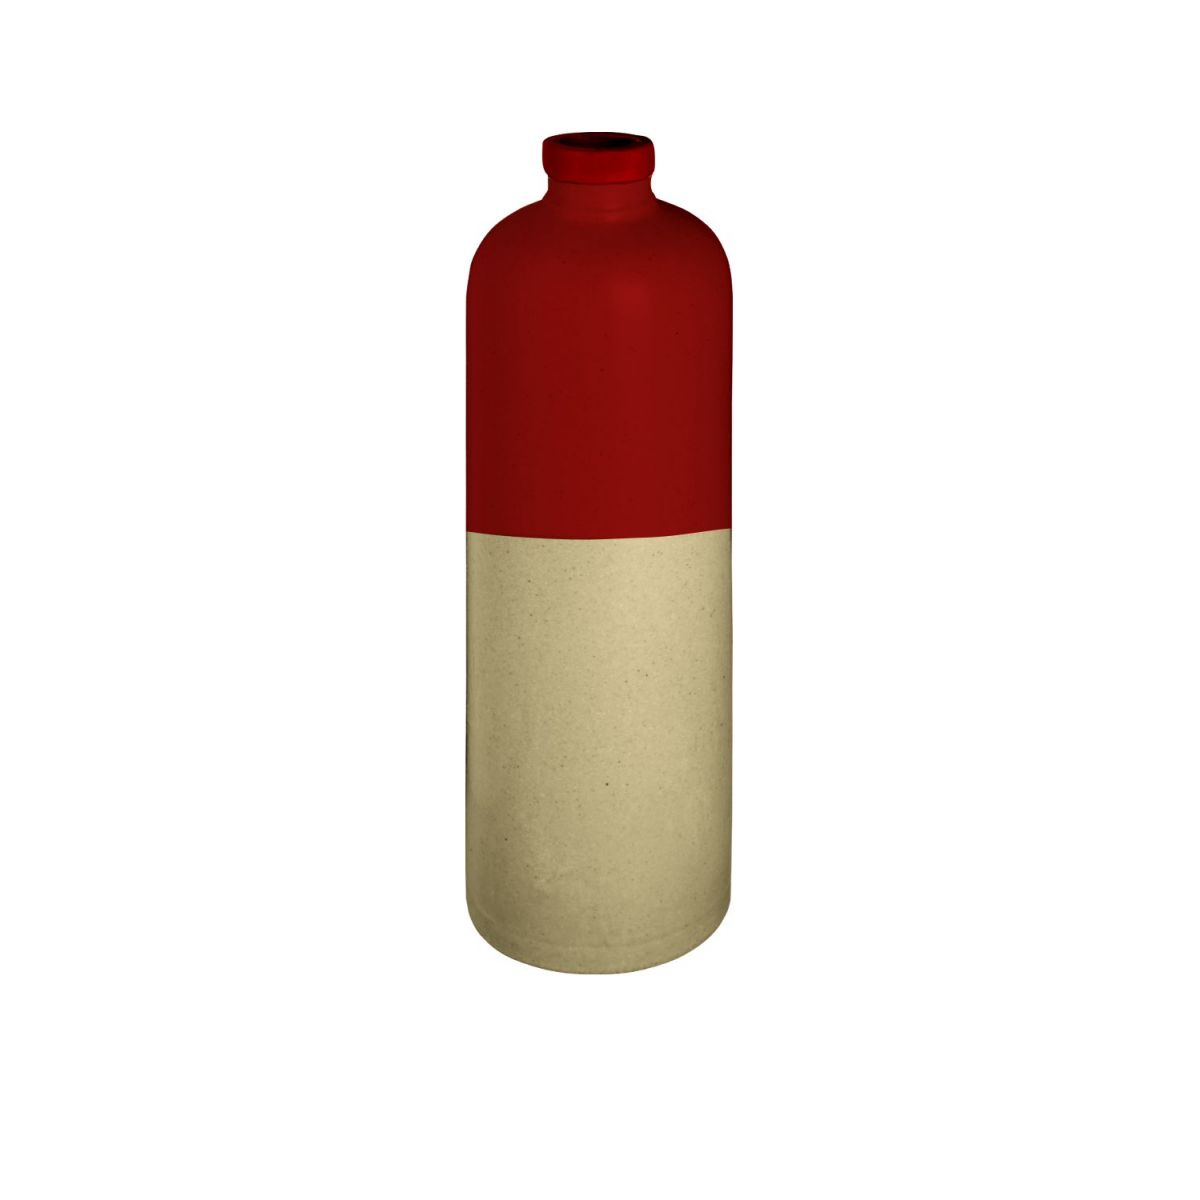 Oil cruet made in sandstone, natural and red n°1